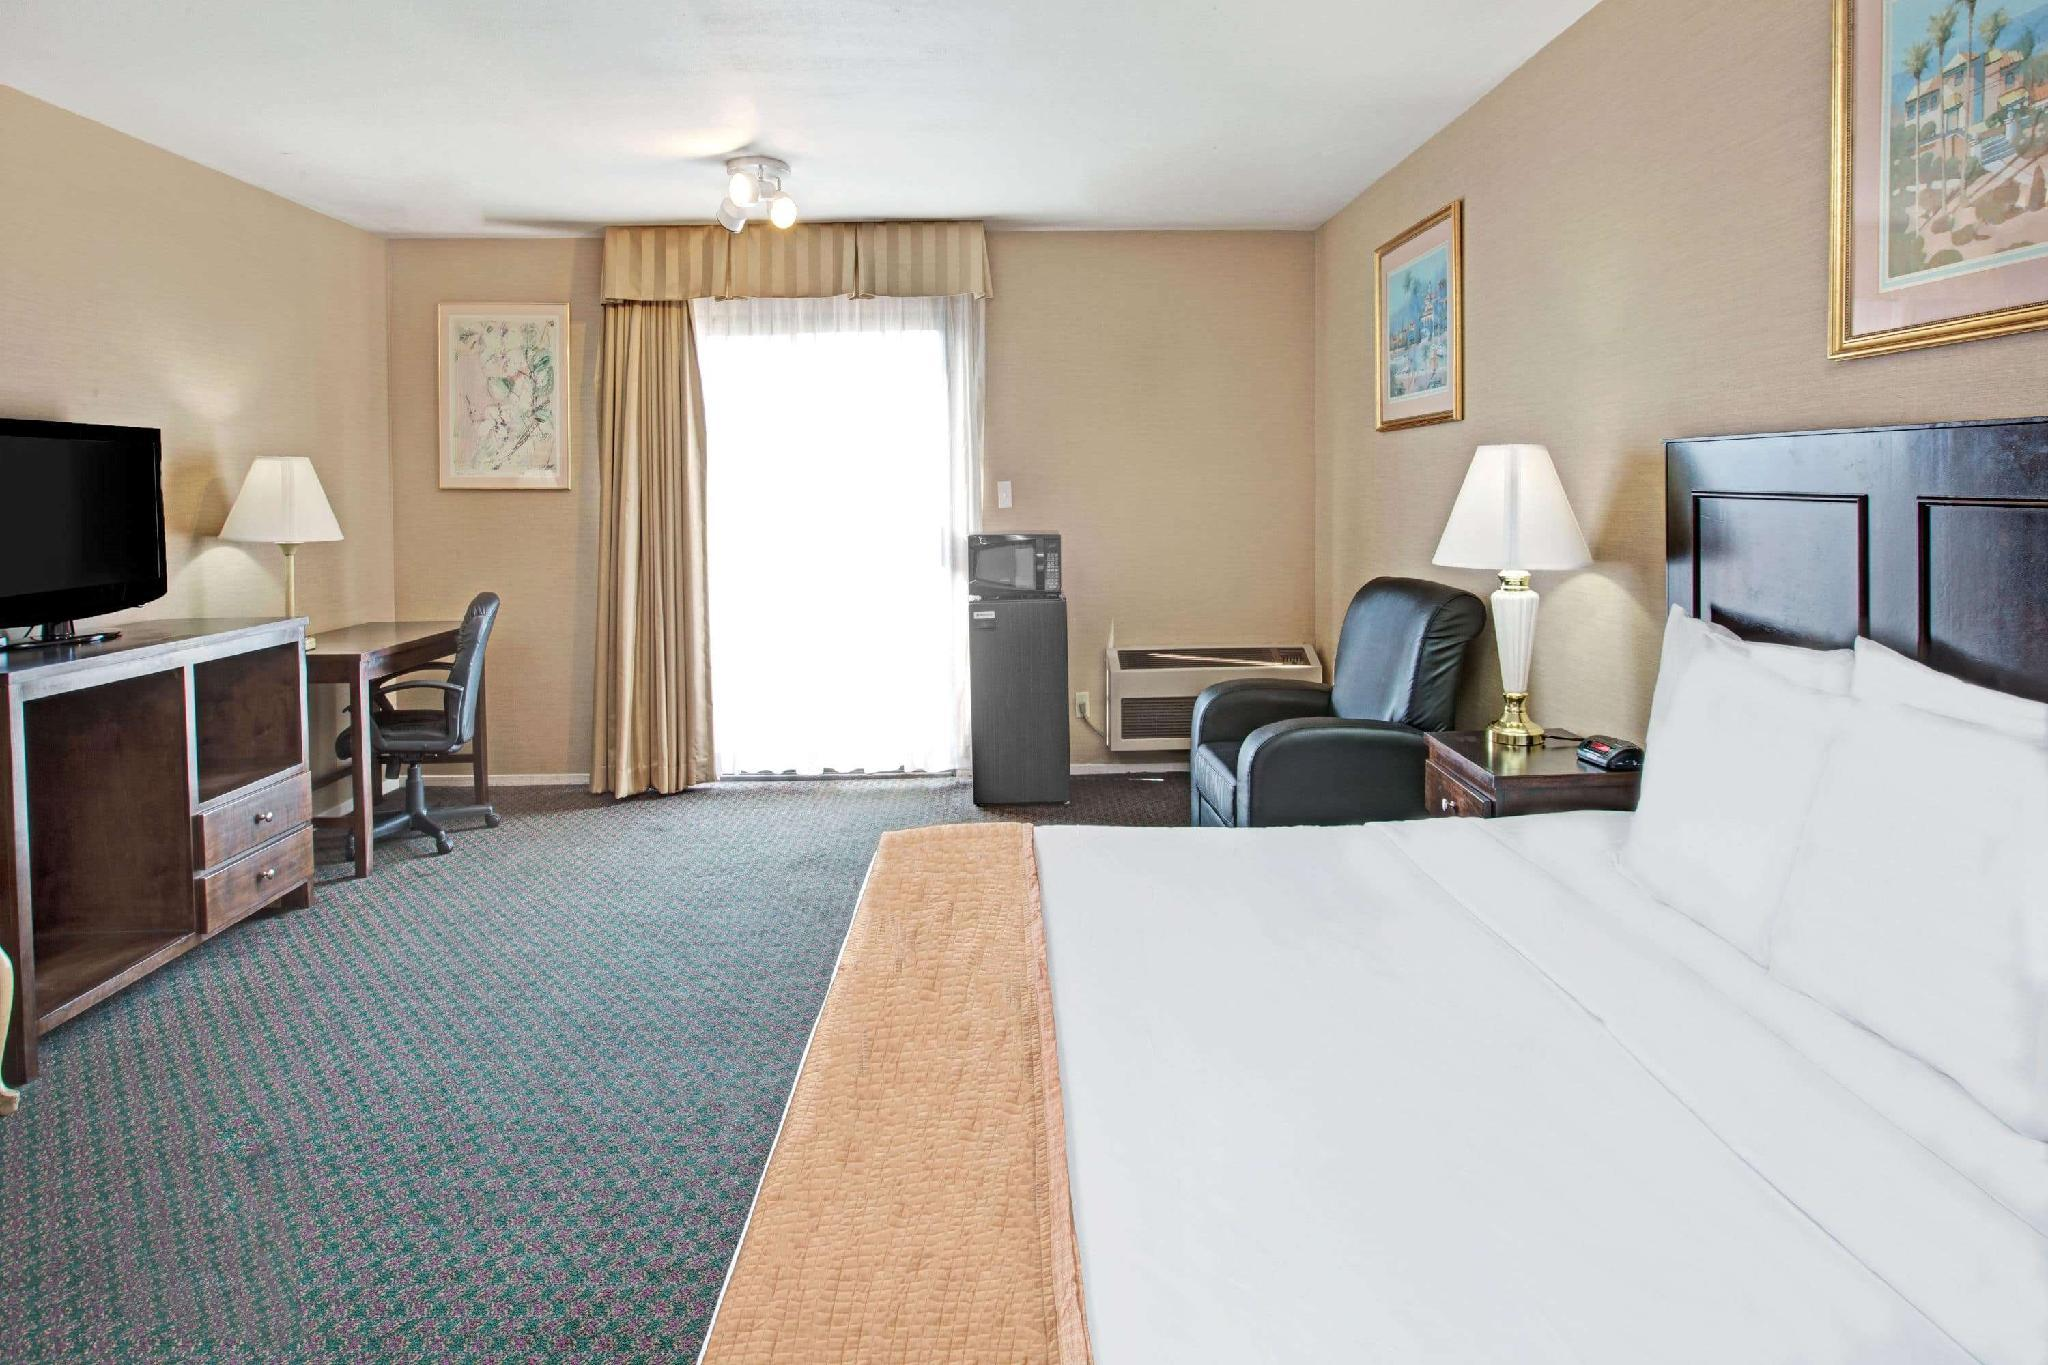 1 King Bed, Mobility Accessible Room, Roll-In Shower, Non-Smoking